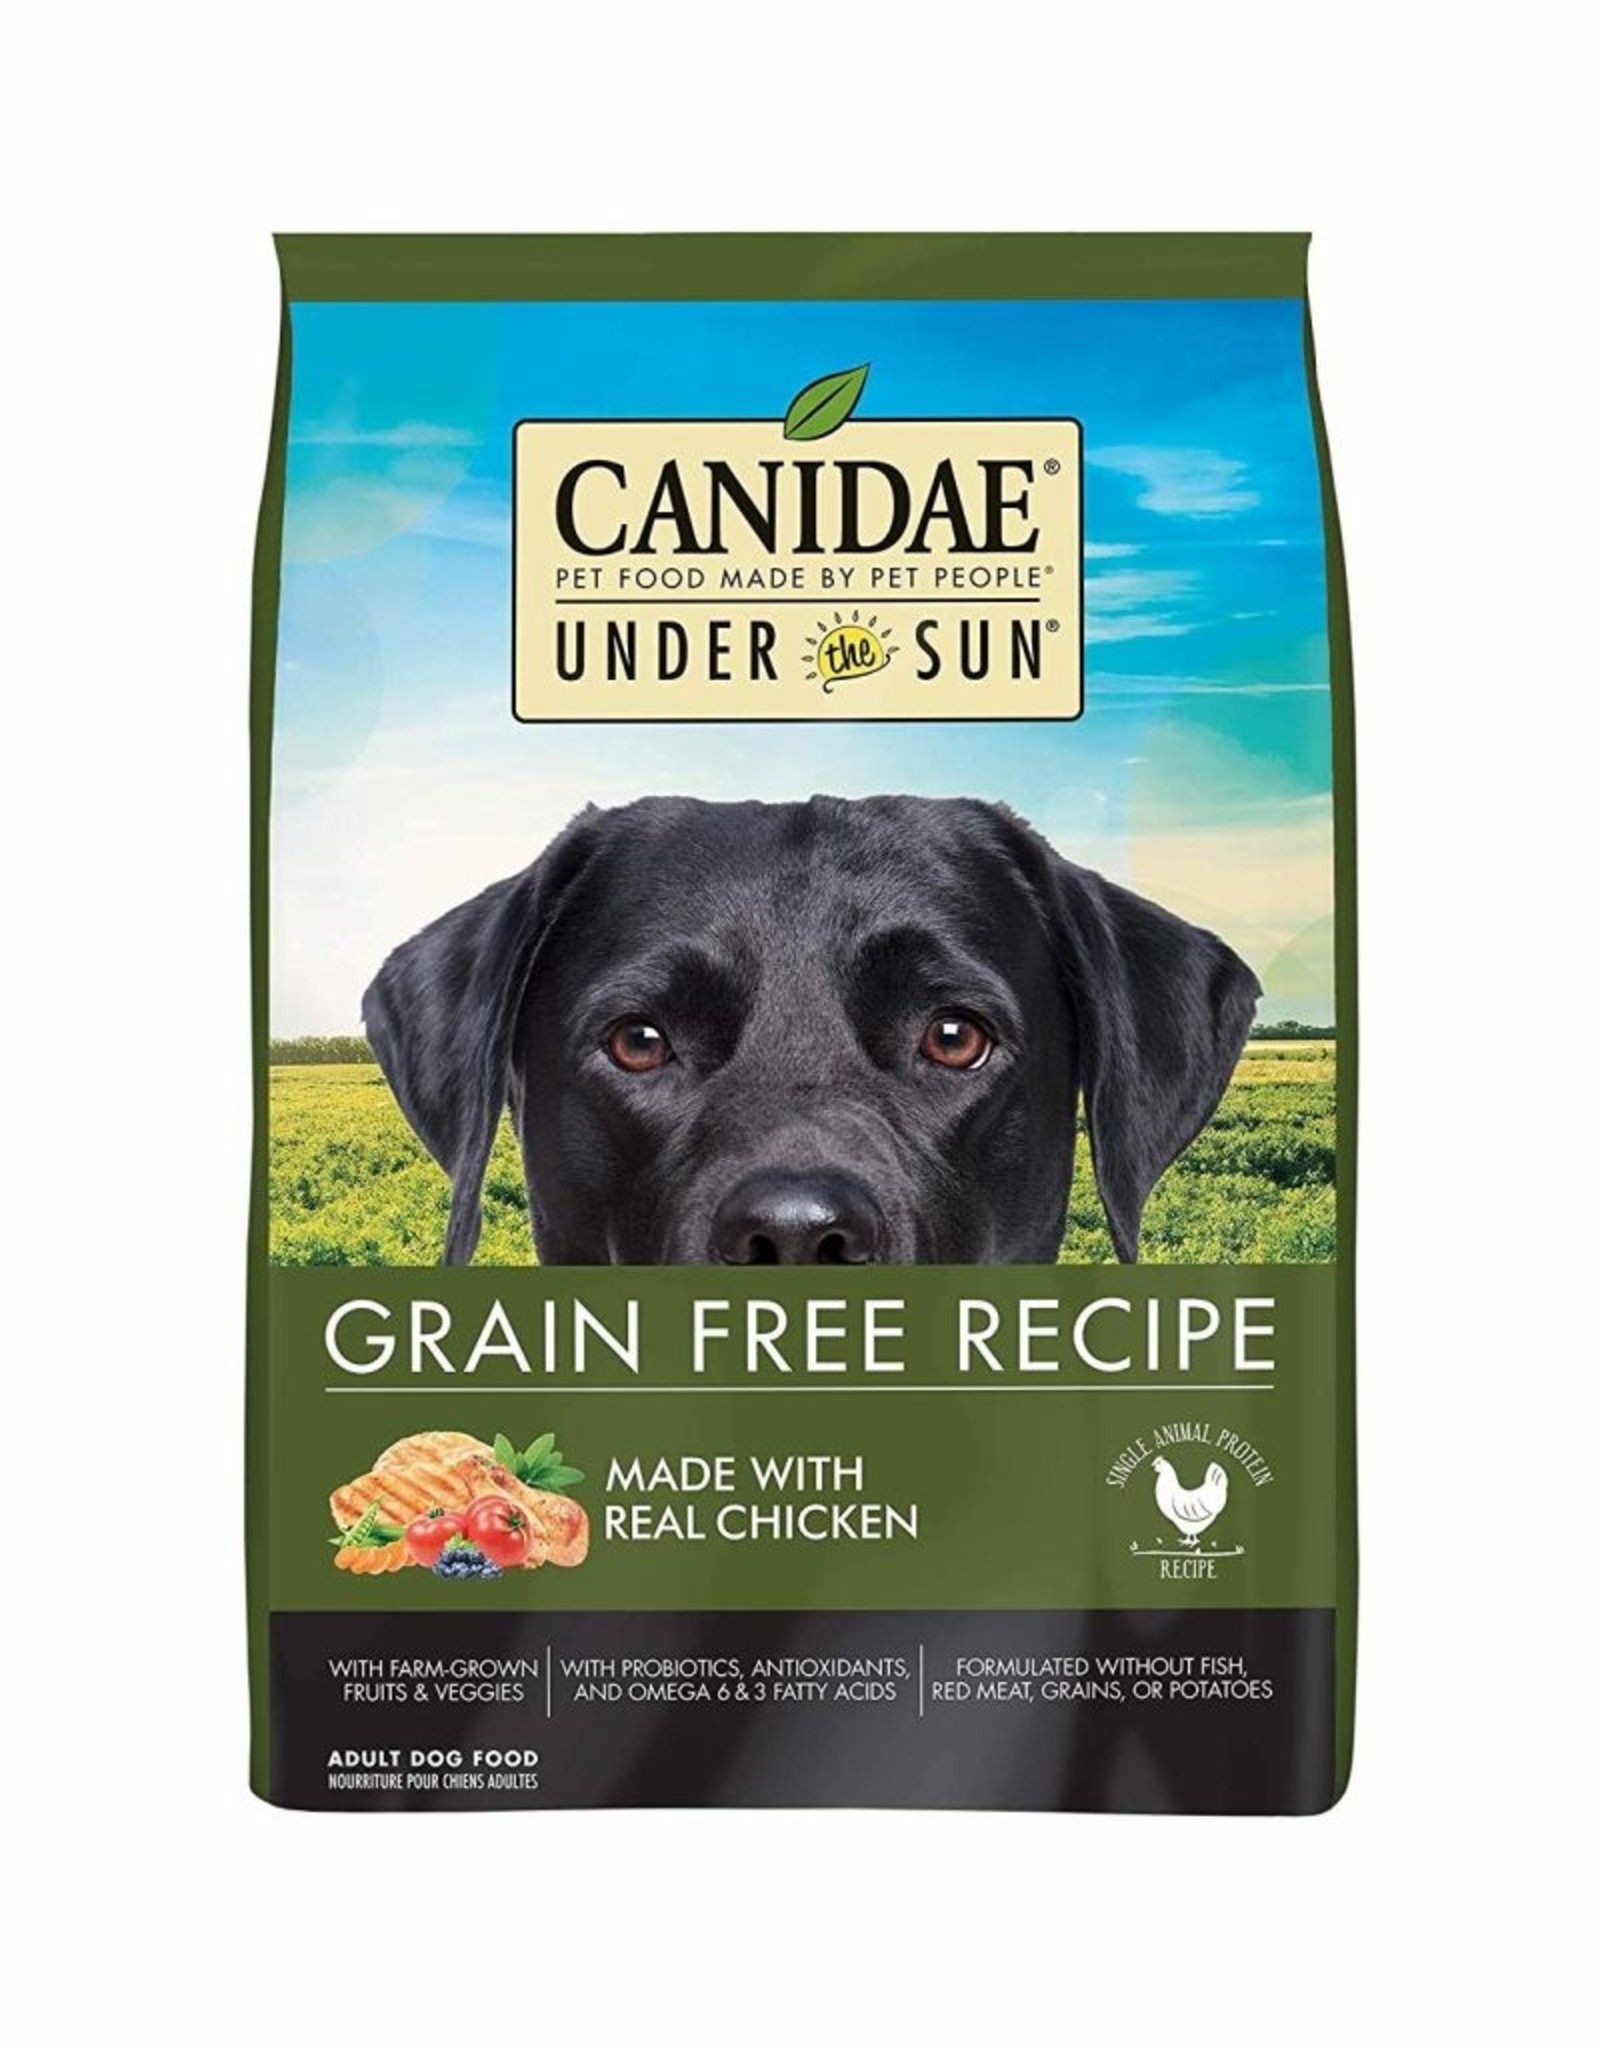 CANIDAE PET FOODS CANIDAE DOG UNDER THE SUN GRAIN FREE CHICKEN 25LBS